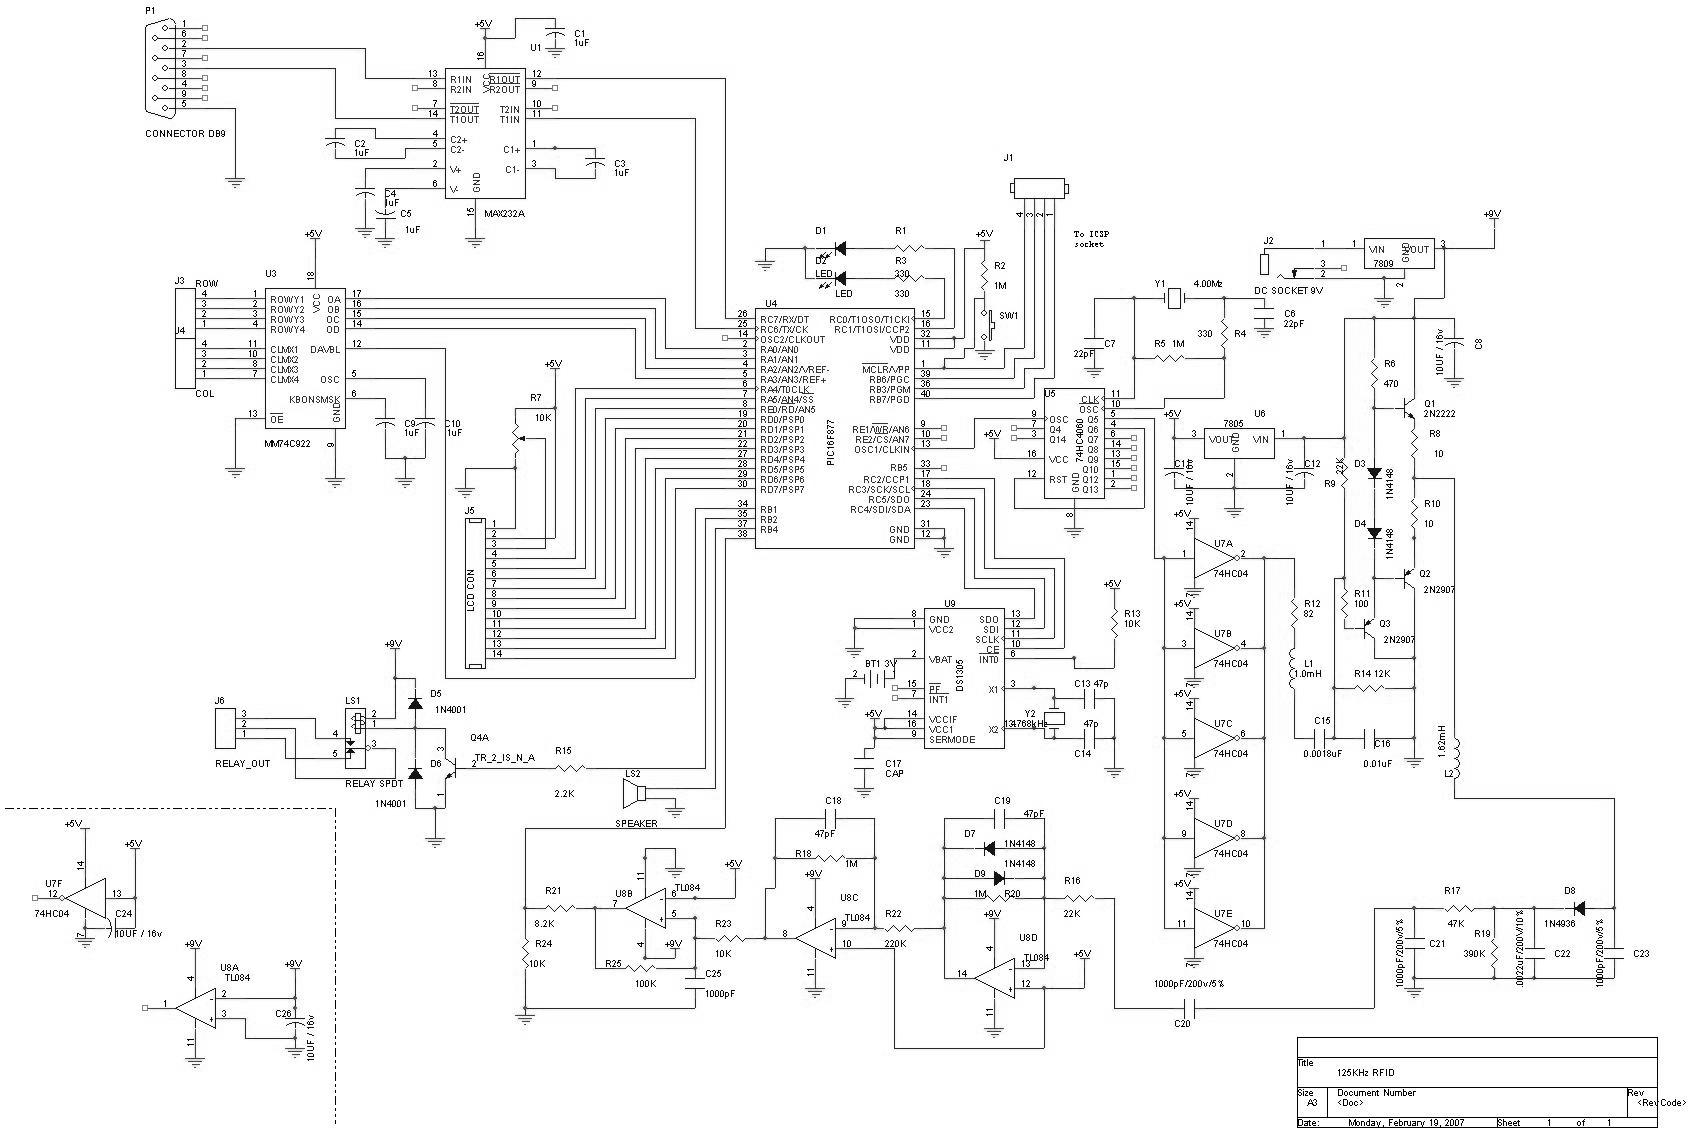 Reverse Engineering Pcb Board Wiring Diagram Circuit Clone Copy Servicespcb Services